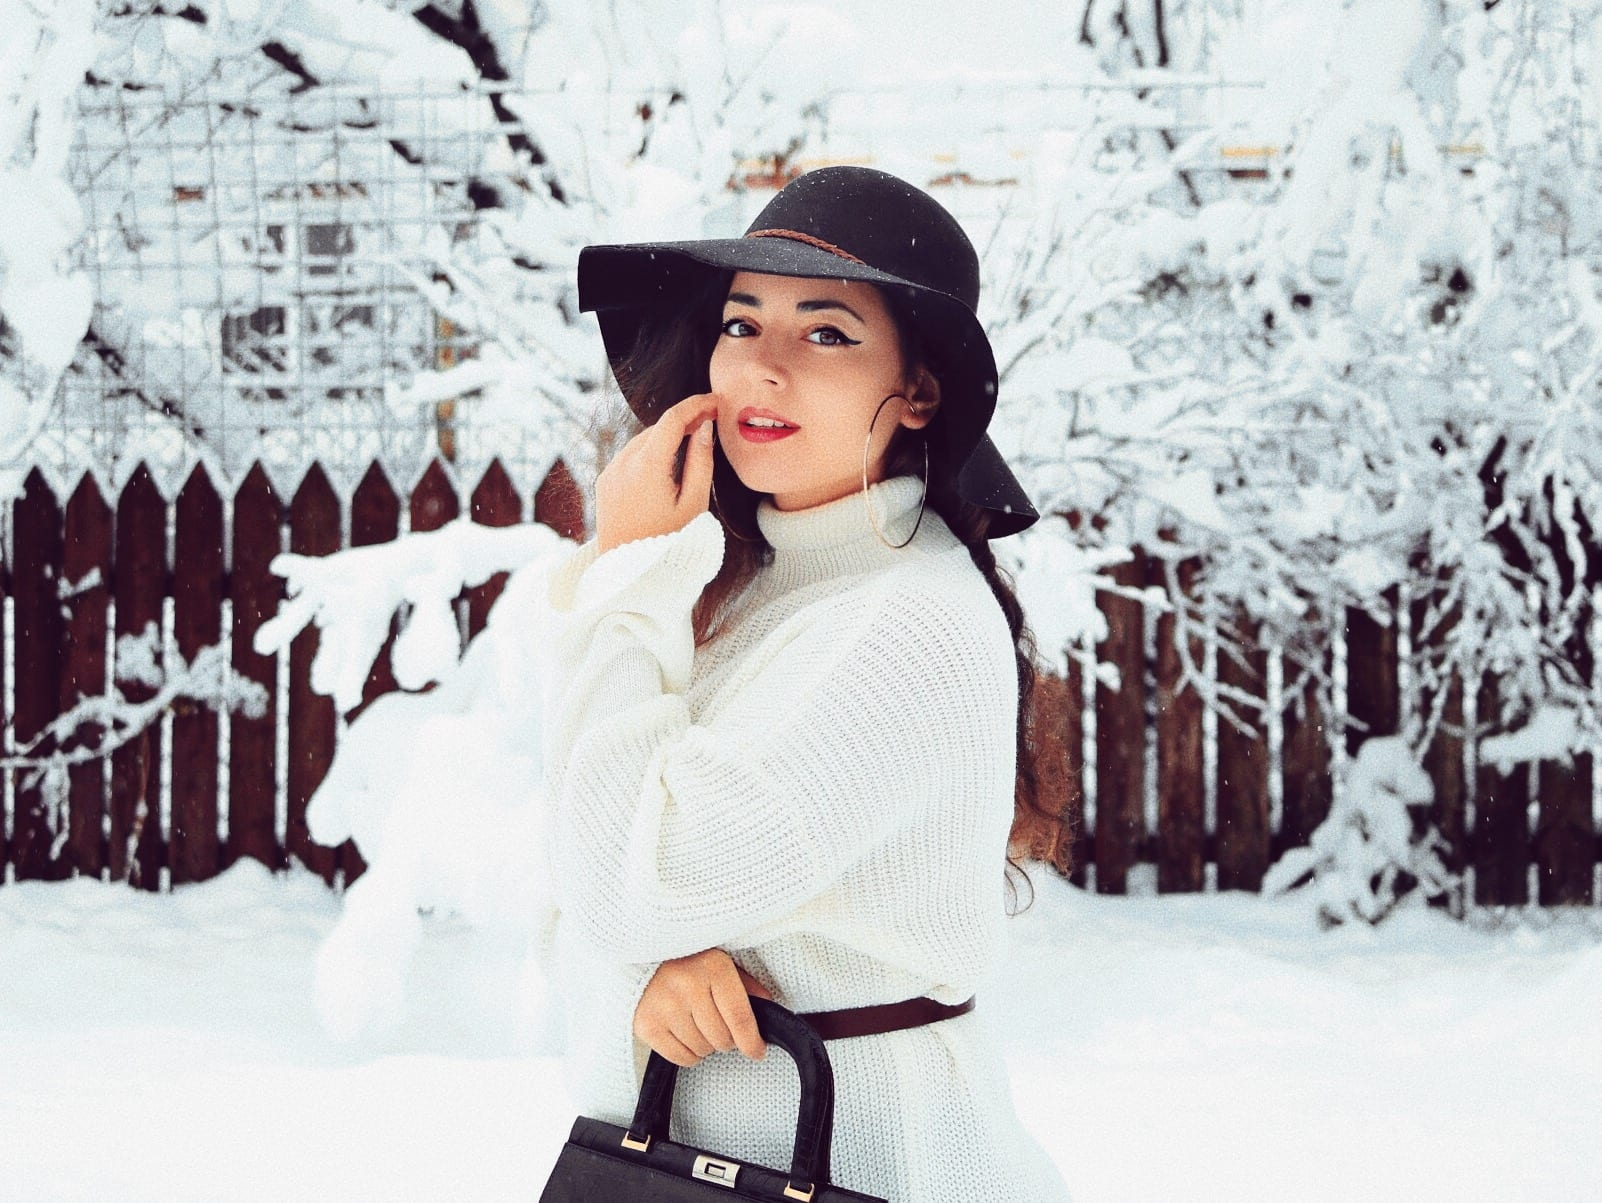 My top 4 fashion dresses for this winter